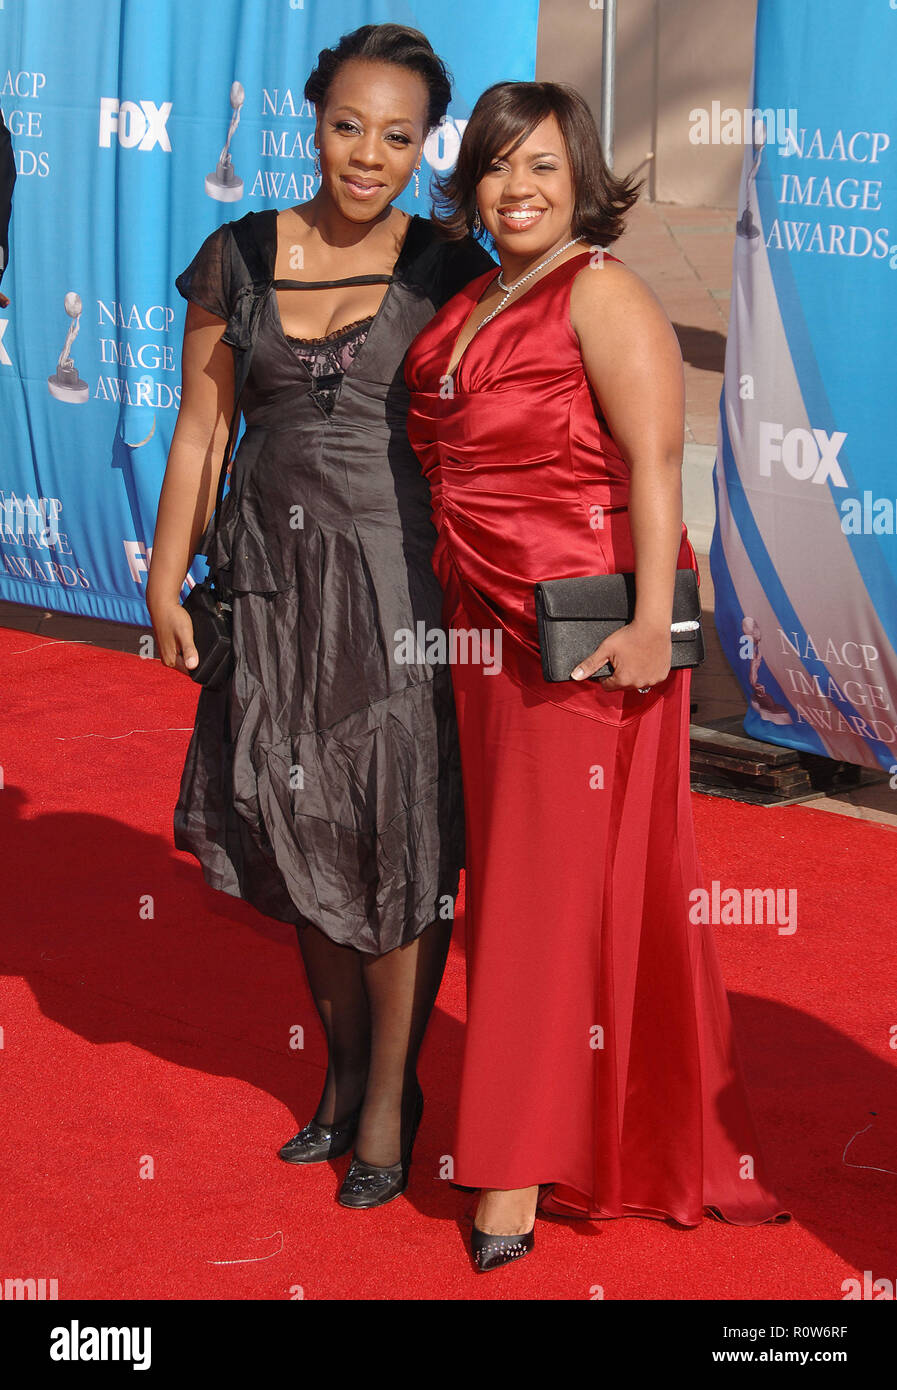 Marianne Jean-Bathiste and Chandra Wilson  at the 38th NAACP Awards 2007 at the Shrine Auditorium In Los Angeles.  full length eye contact smile red d - Stock Image